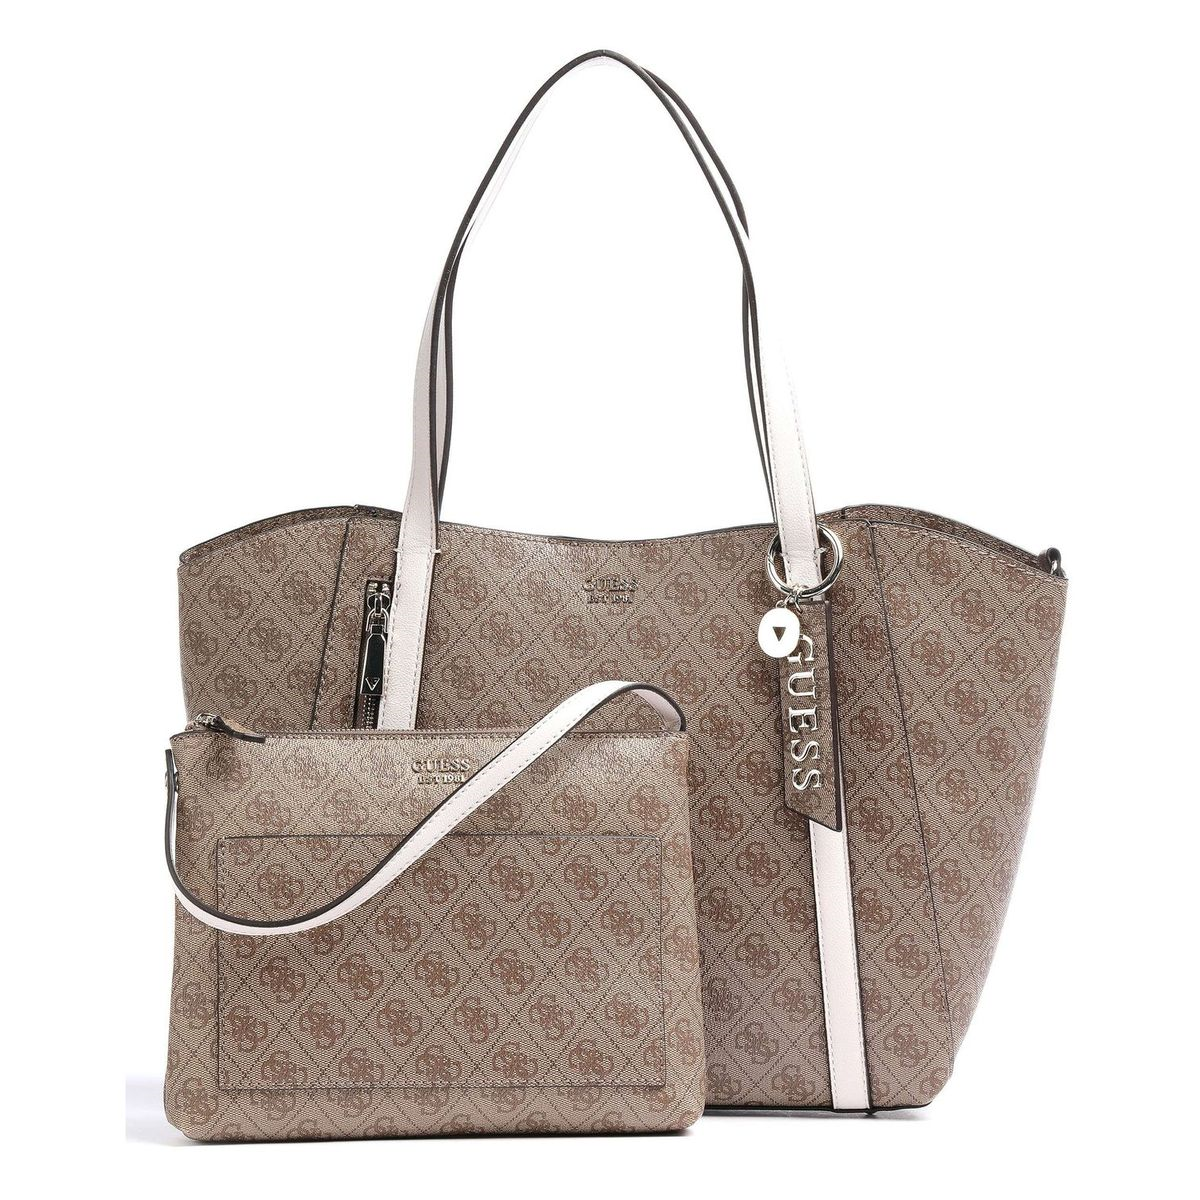 539 NAYA TRAP TOTE:LATTE/SIMILI CUIR/SYNTHETIQUE//Latte